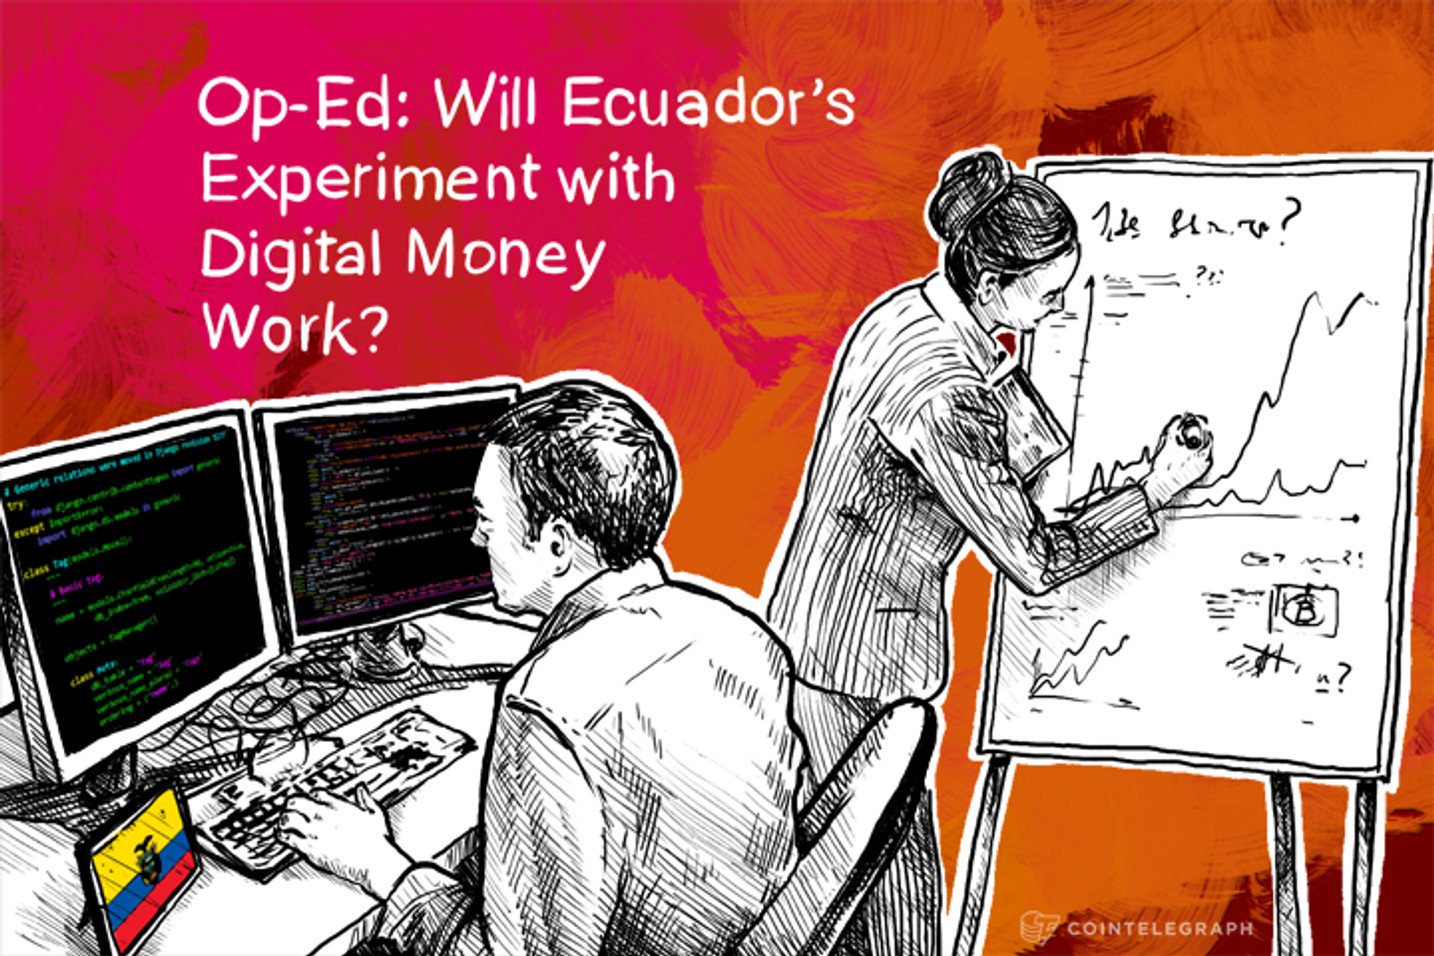 Op-Ed: Will Ecuador's Experiment with Digital Money Work?